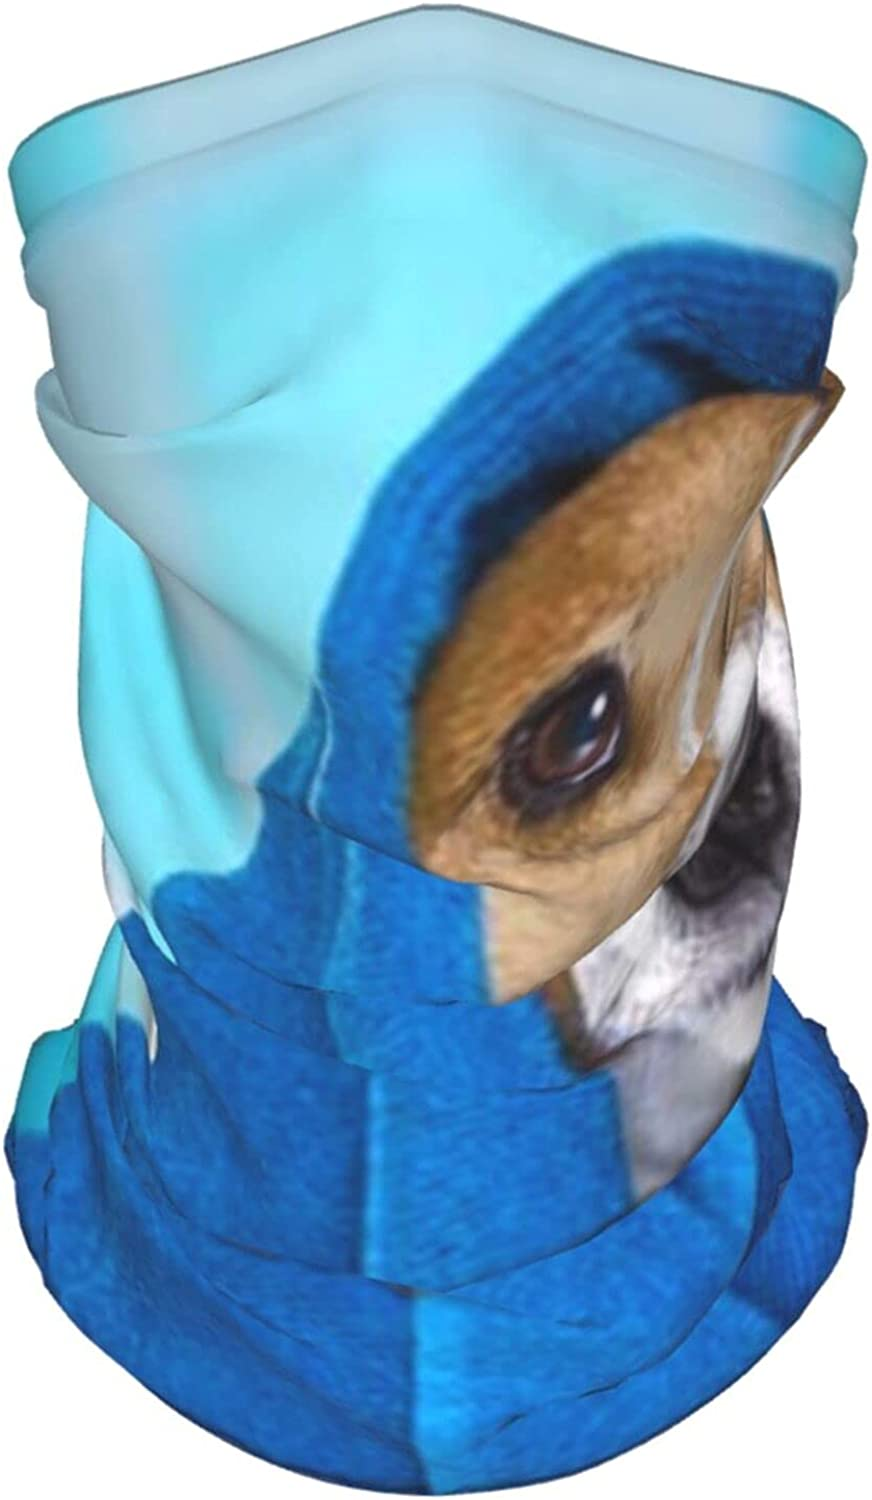 Jack Russell Dog Bathtub Not Amused Animals Wildlife Summer Ice Silk Breathable Face Mask Neck Gaiter Scarf Bandanas for Fishing,Hiking,Running,Motorcycle and Daily Wear